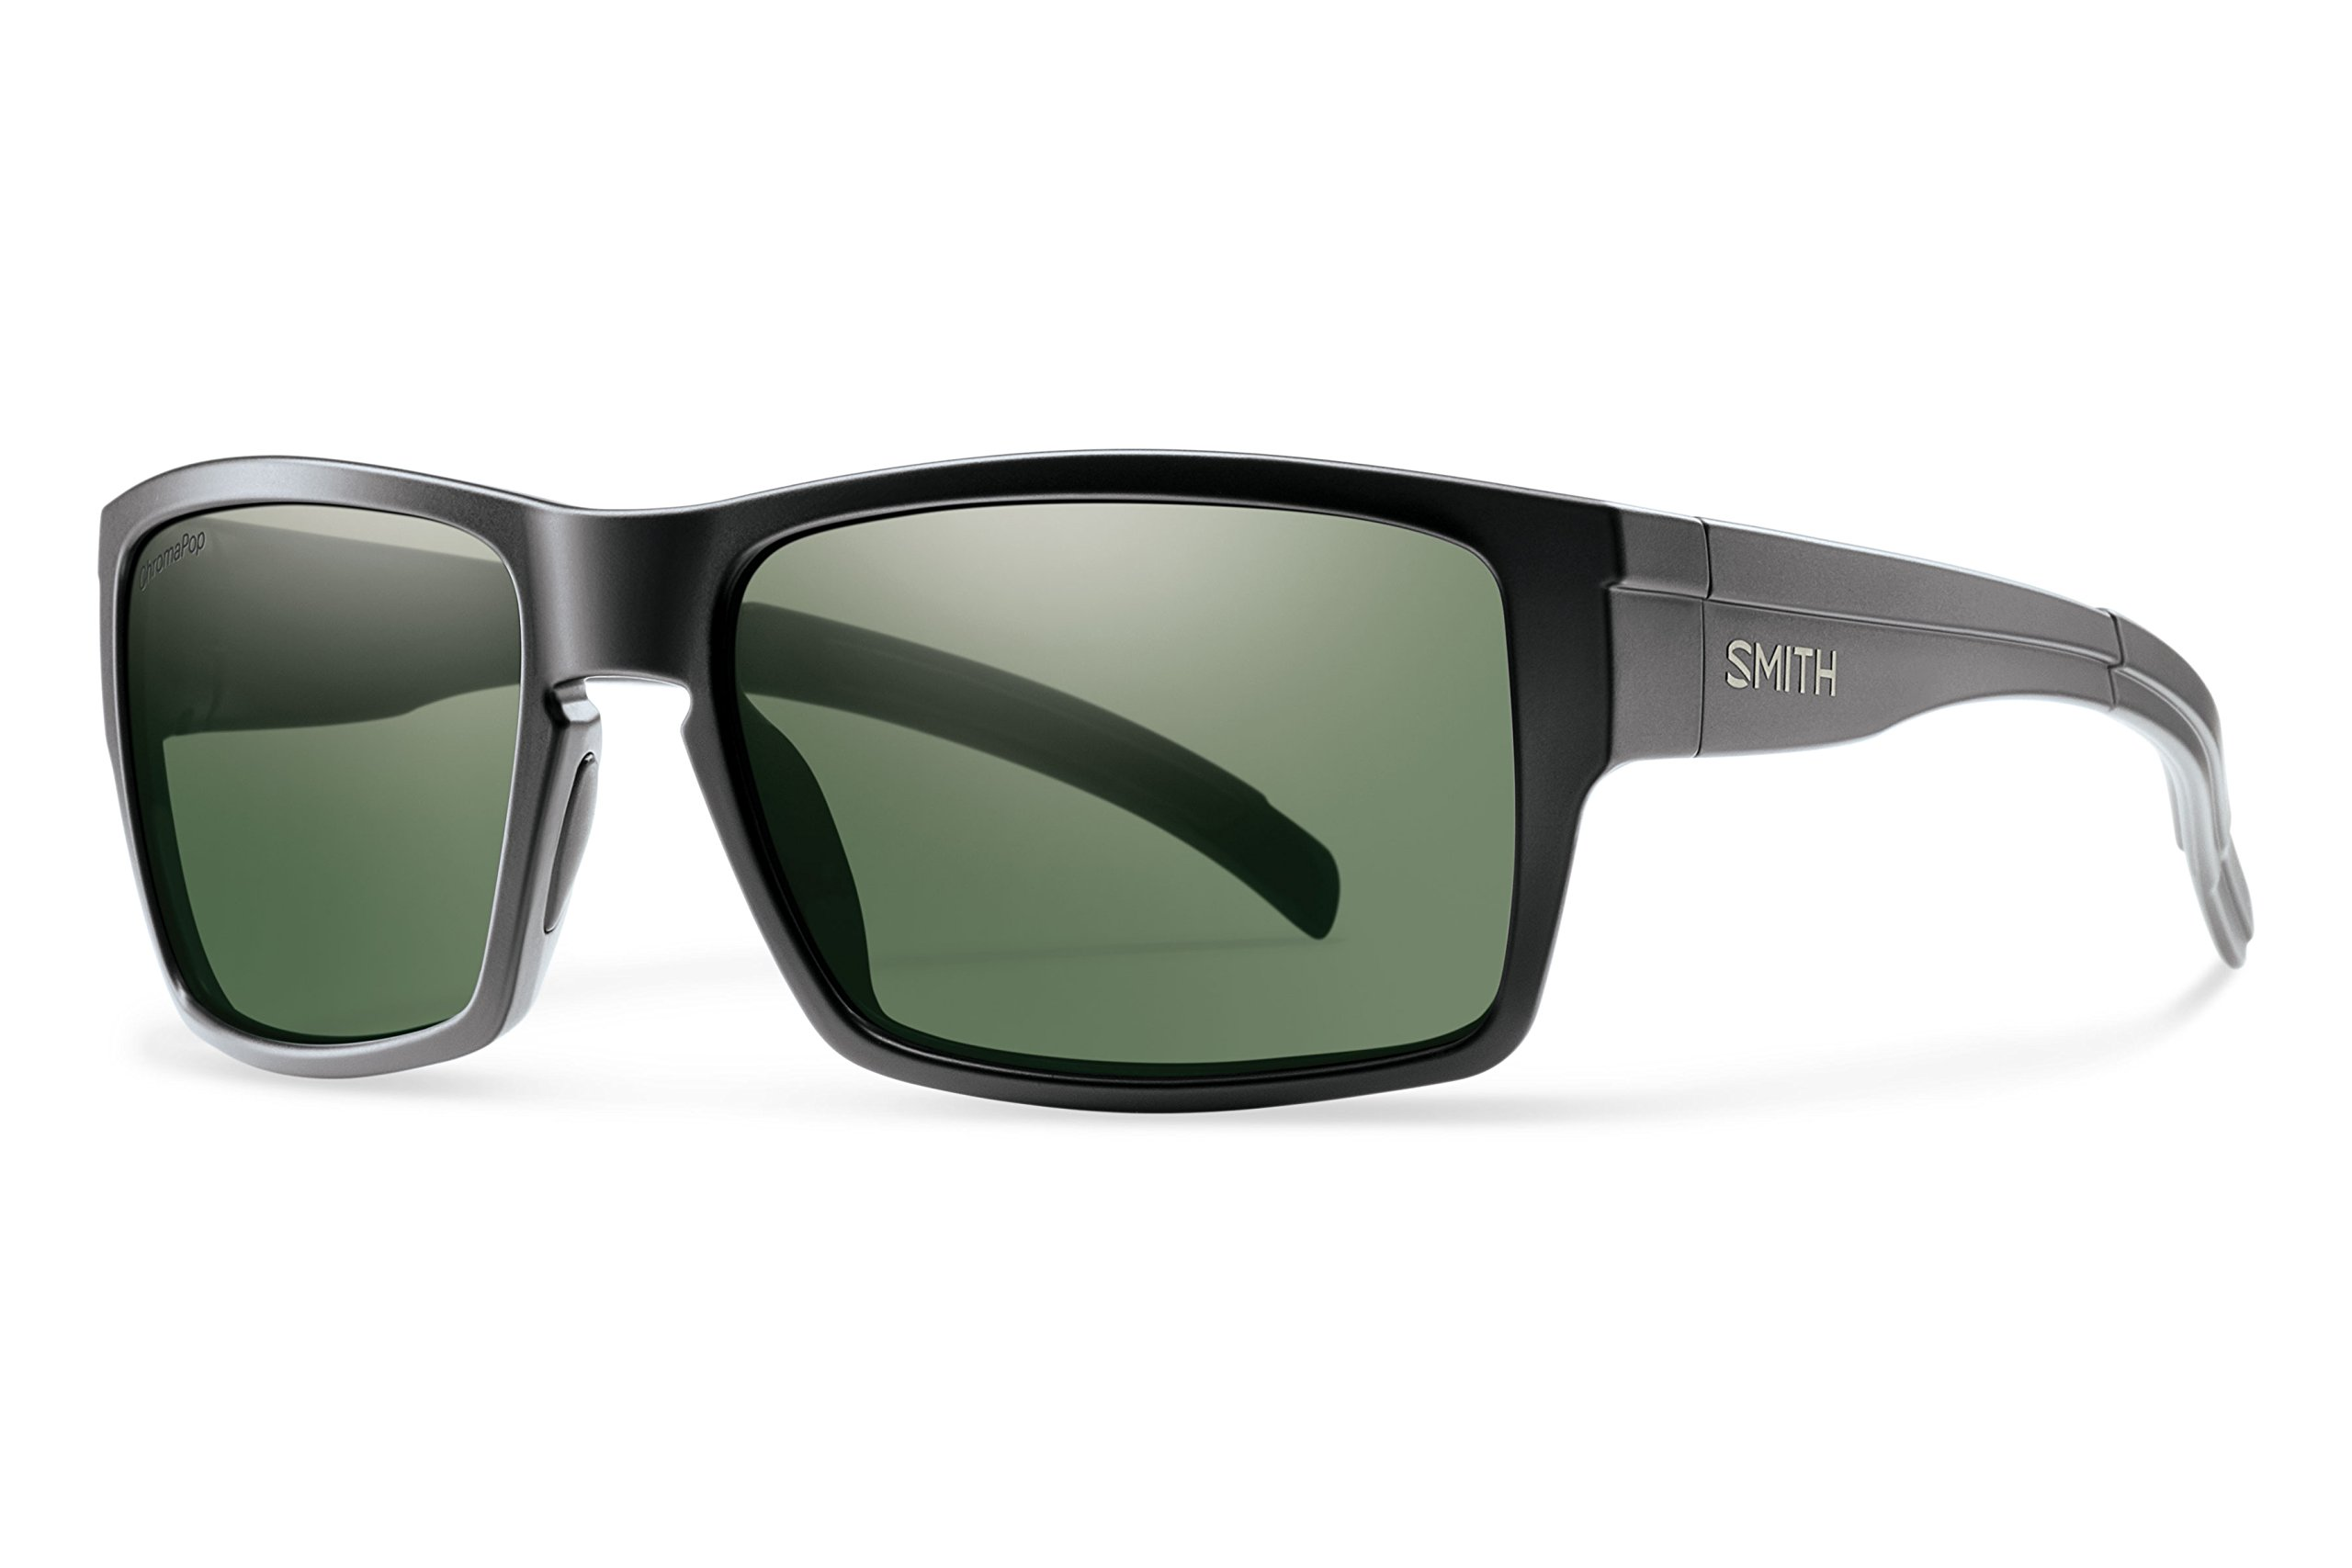 Smith Optics Outlier XL ChromaPop Polarized Sunglasses, Matte Black